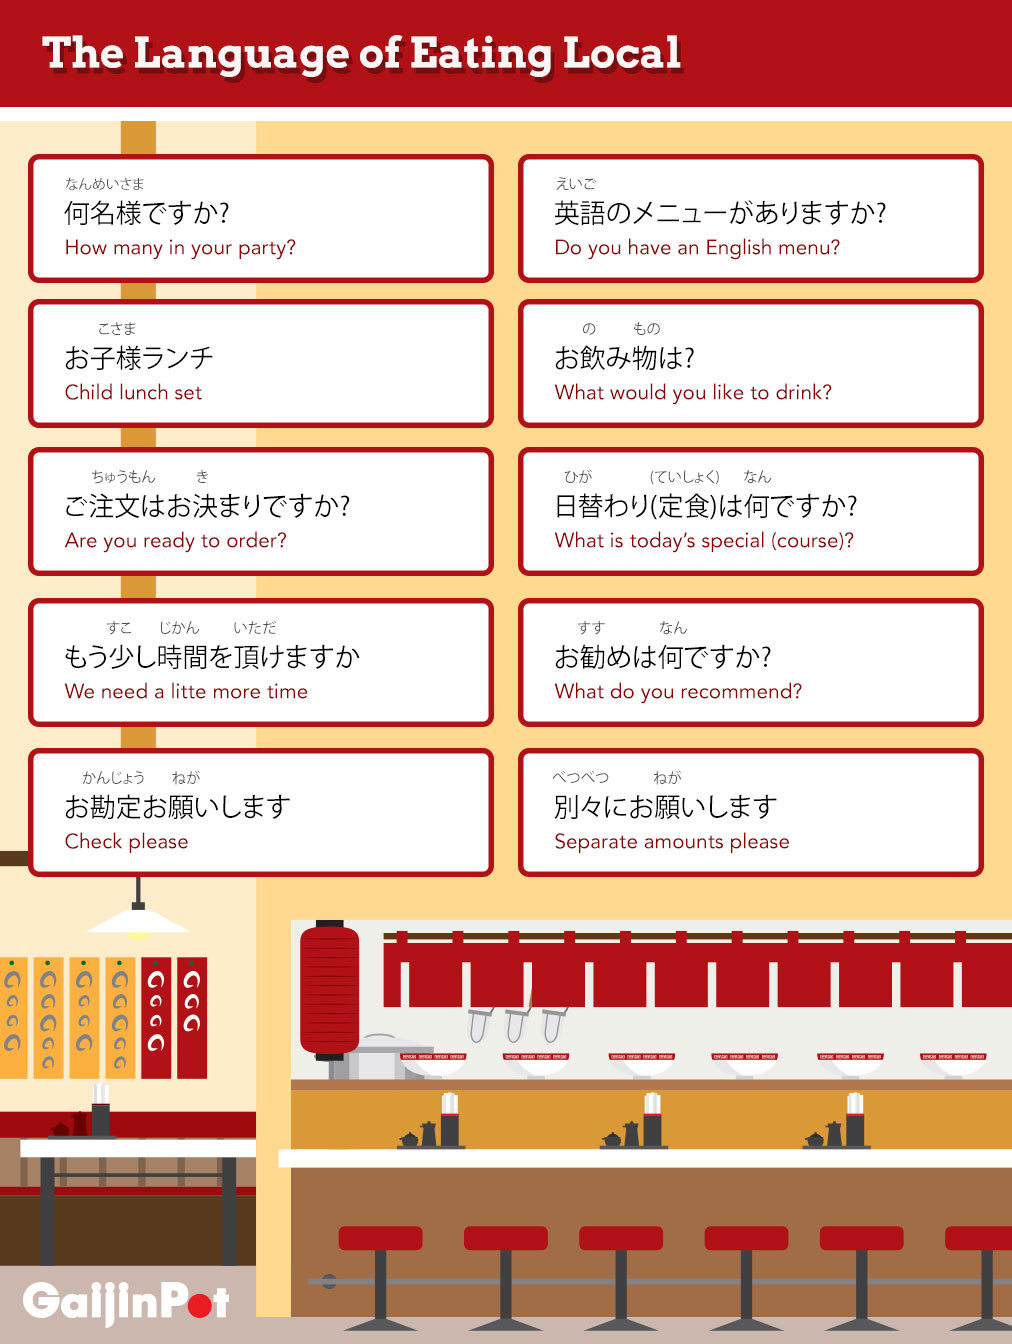 The language of eating local gaijinpot bonus study graphic m4hsunfo